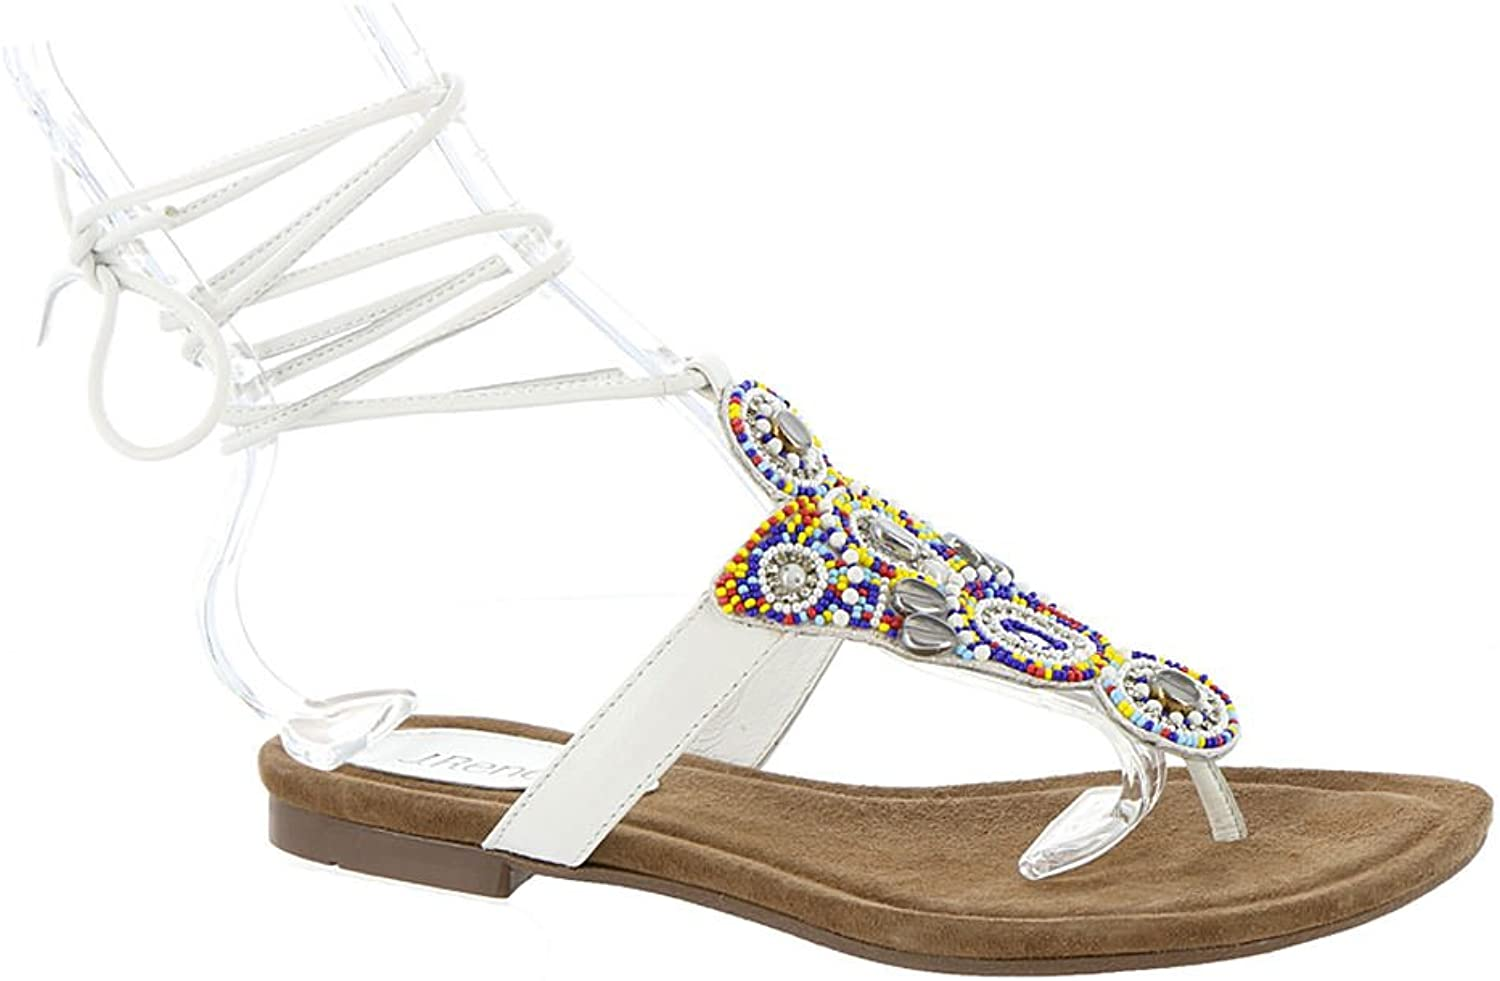 NOTFOUND Womens Lamarra Leather Open Toe Casual Strappy, Multi-White, Size 9.5